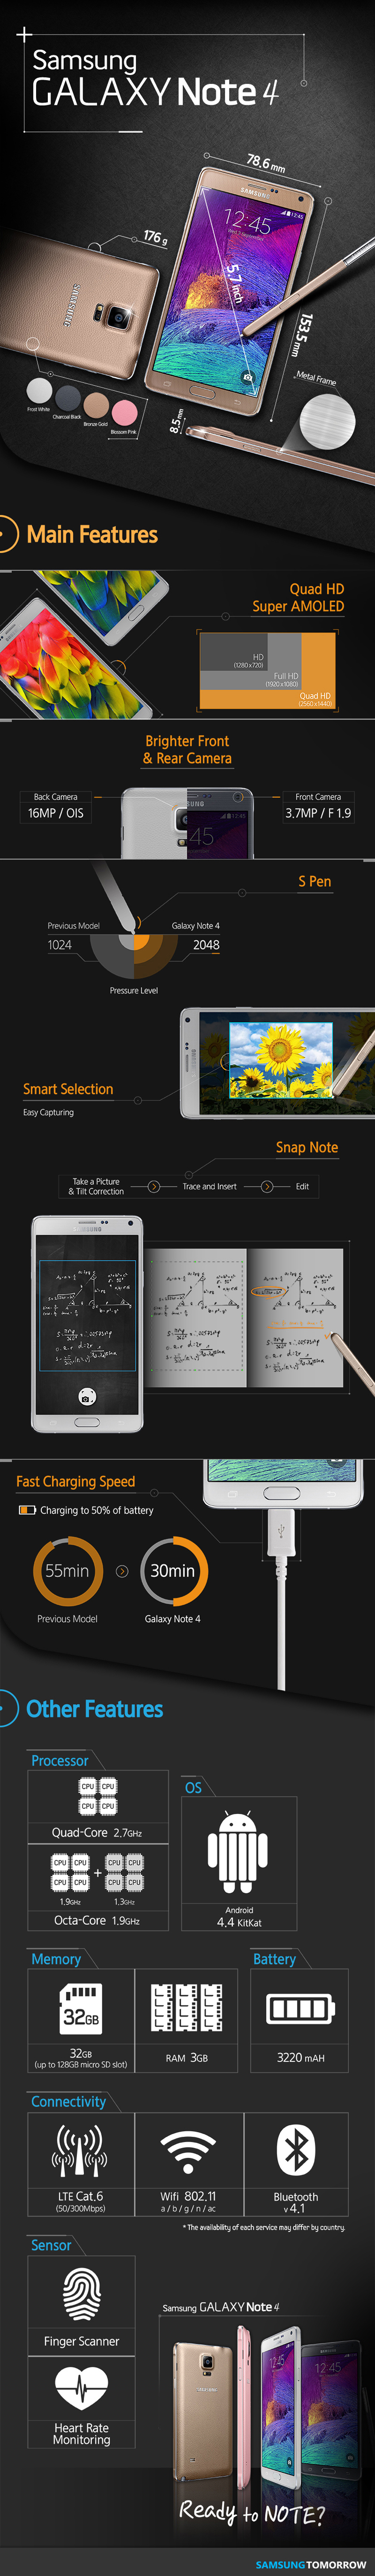 infographic-The-main-features-of-the-Galaxy-Note-4 اینفوگرافیک گلکسی نوت 4